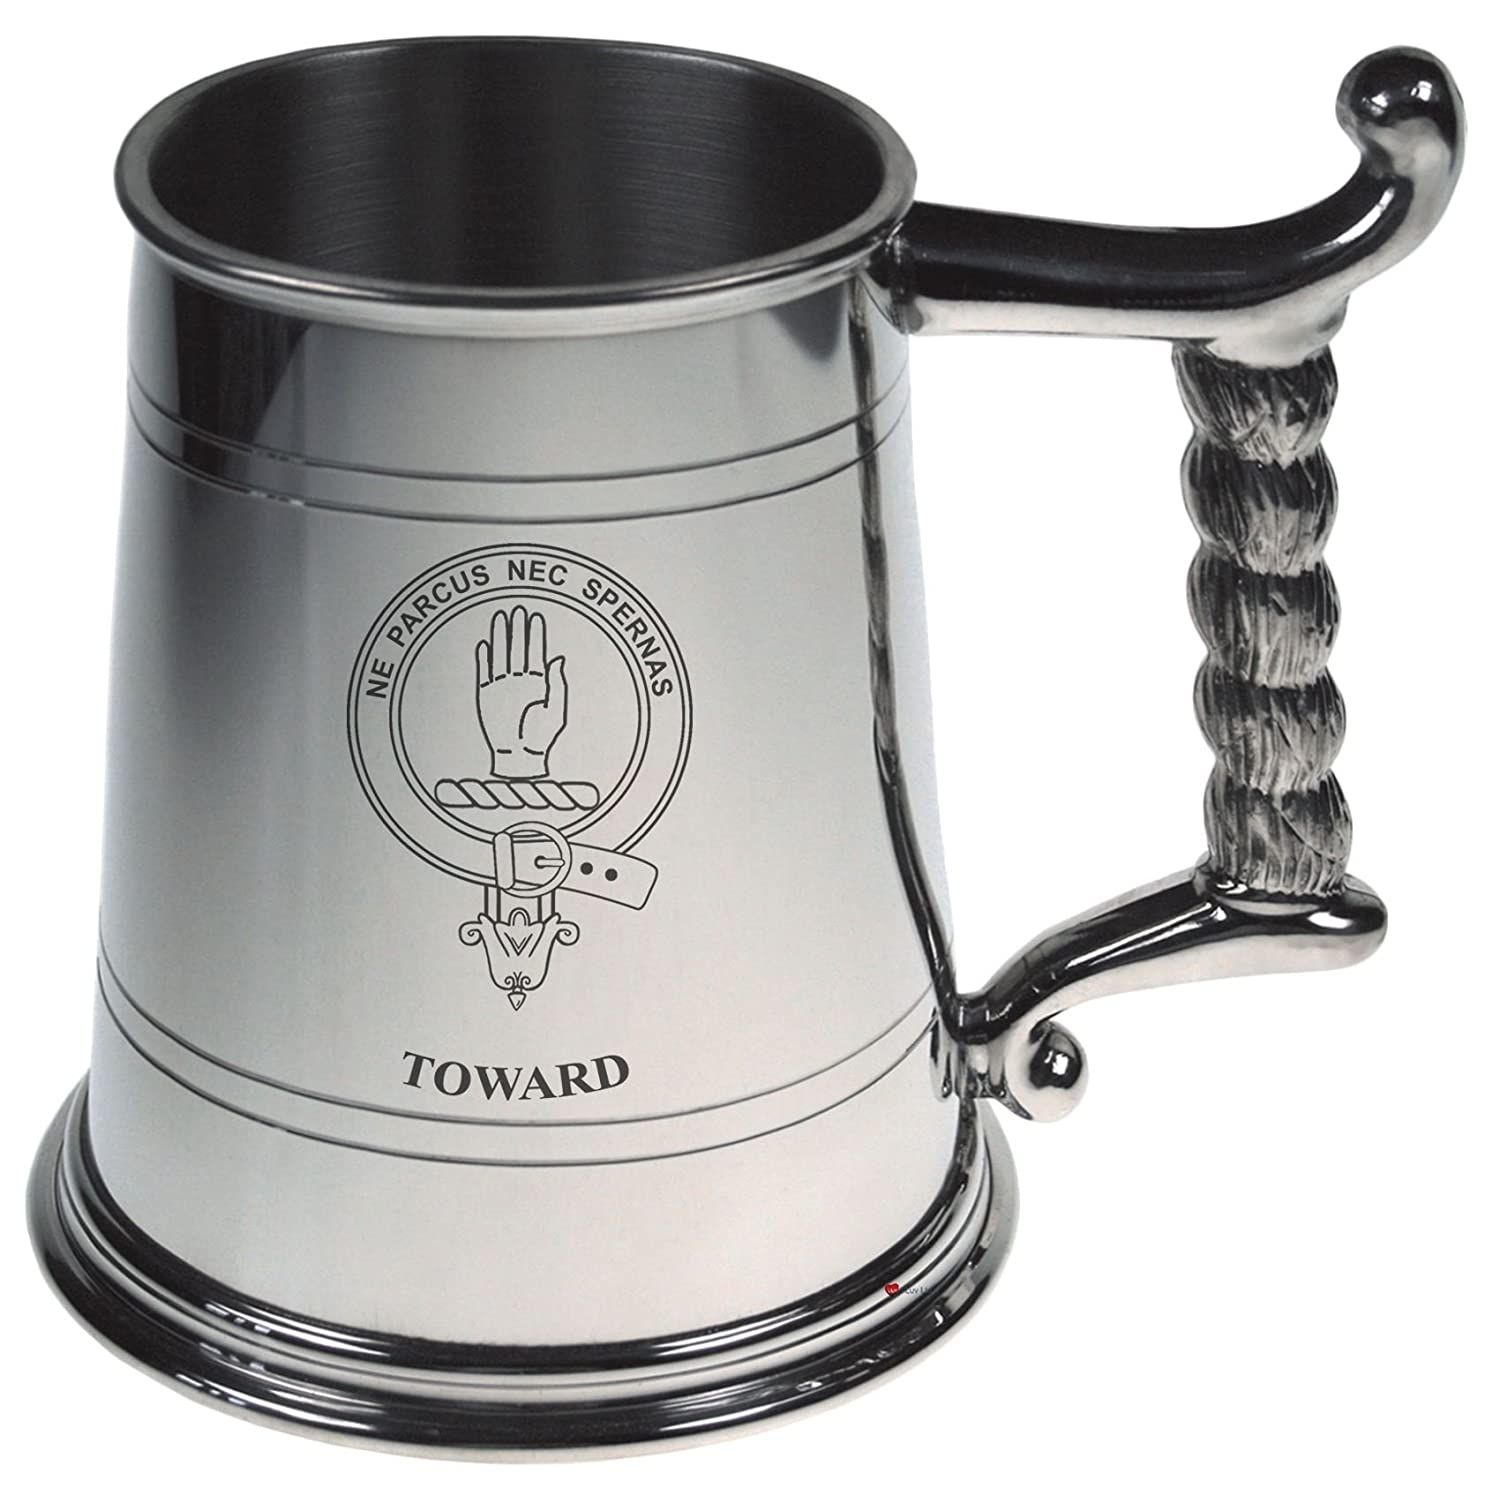 Toward Crest Tankard with Rope Handle in Polished Pewter 1 Pint Capacity